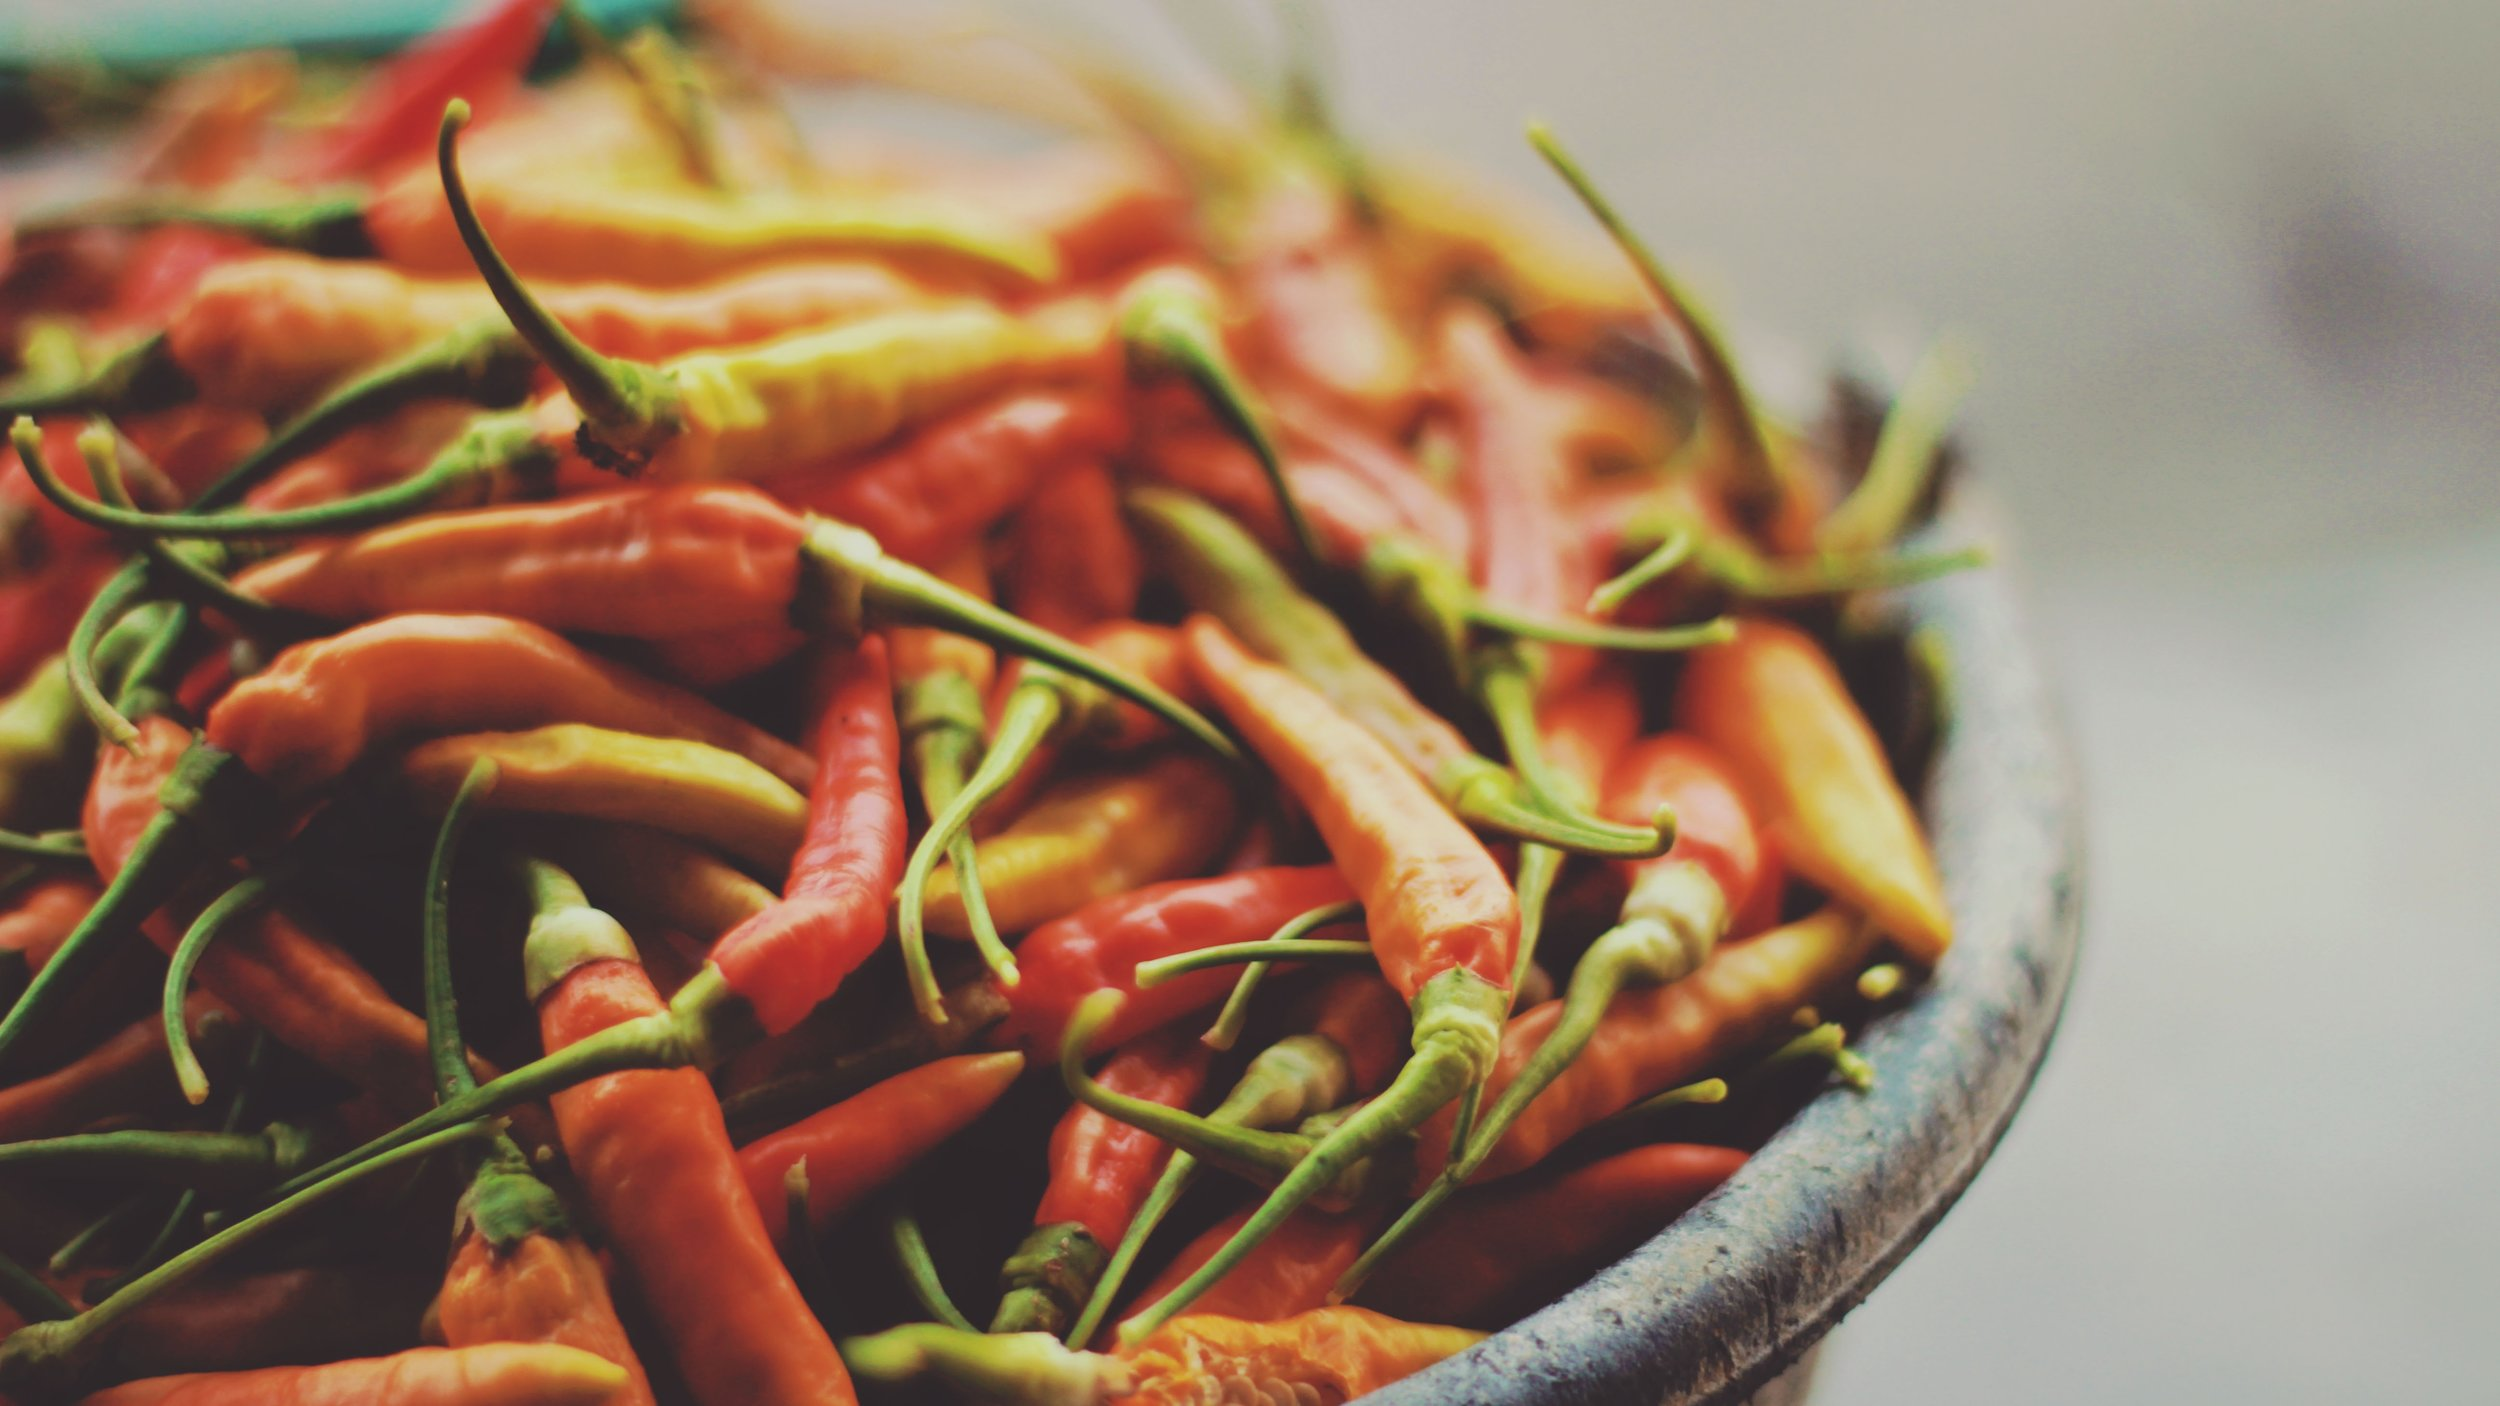 Bowl of hot red peppers